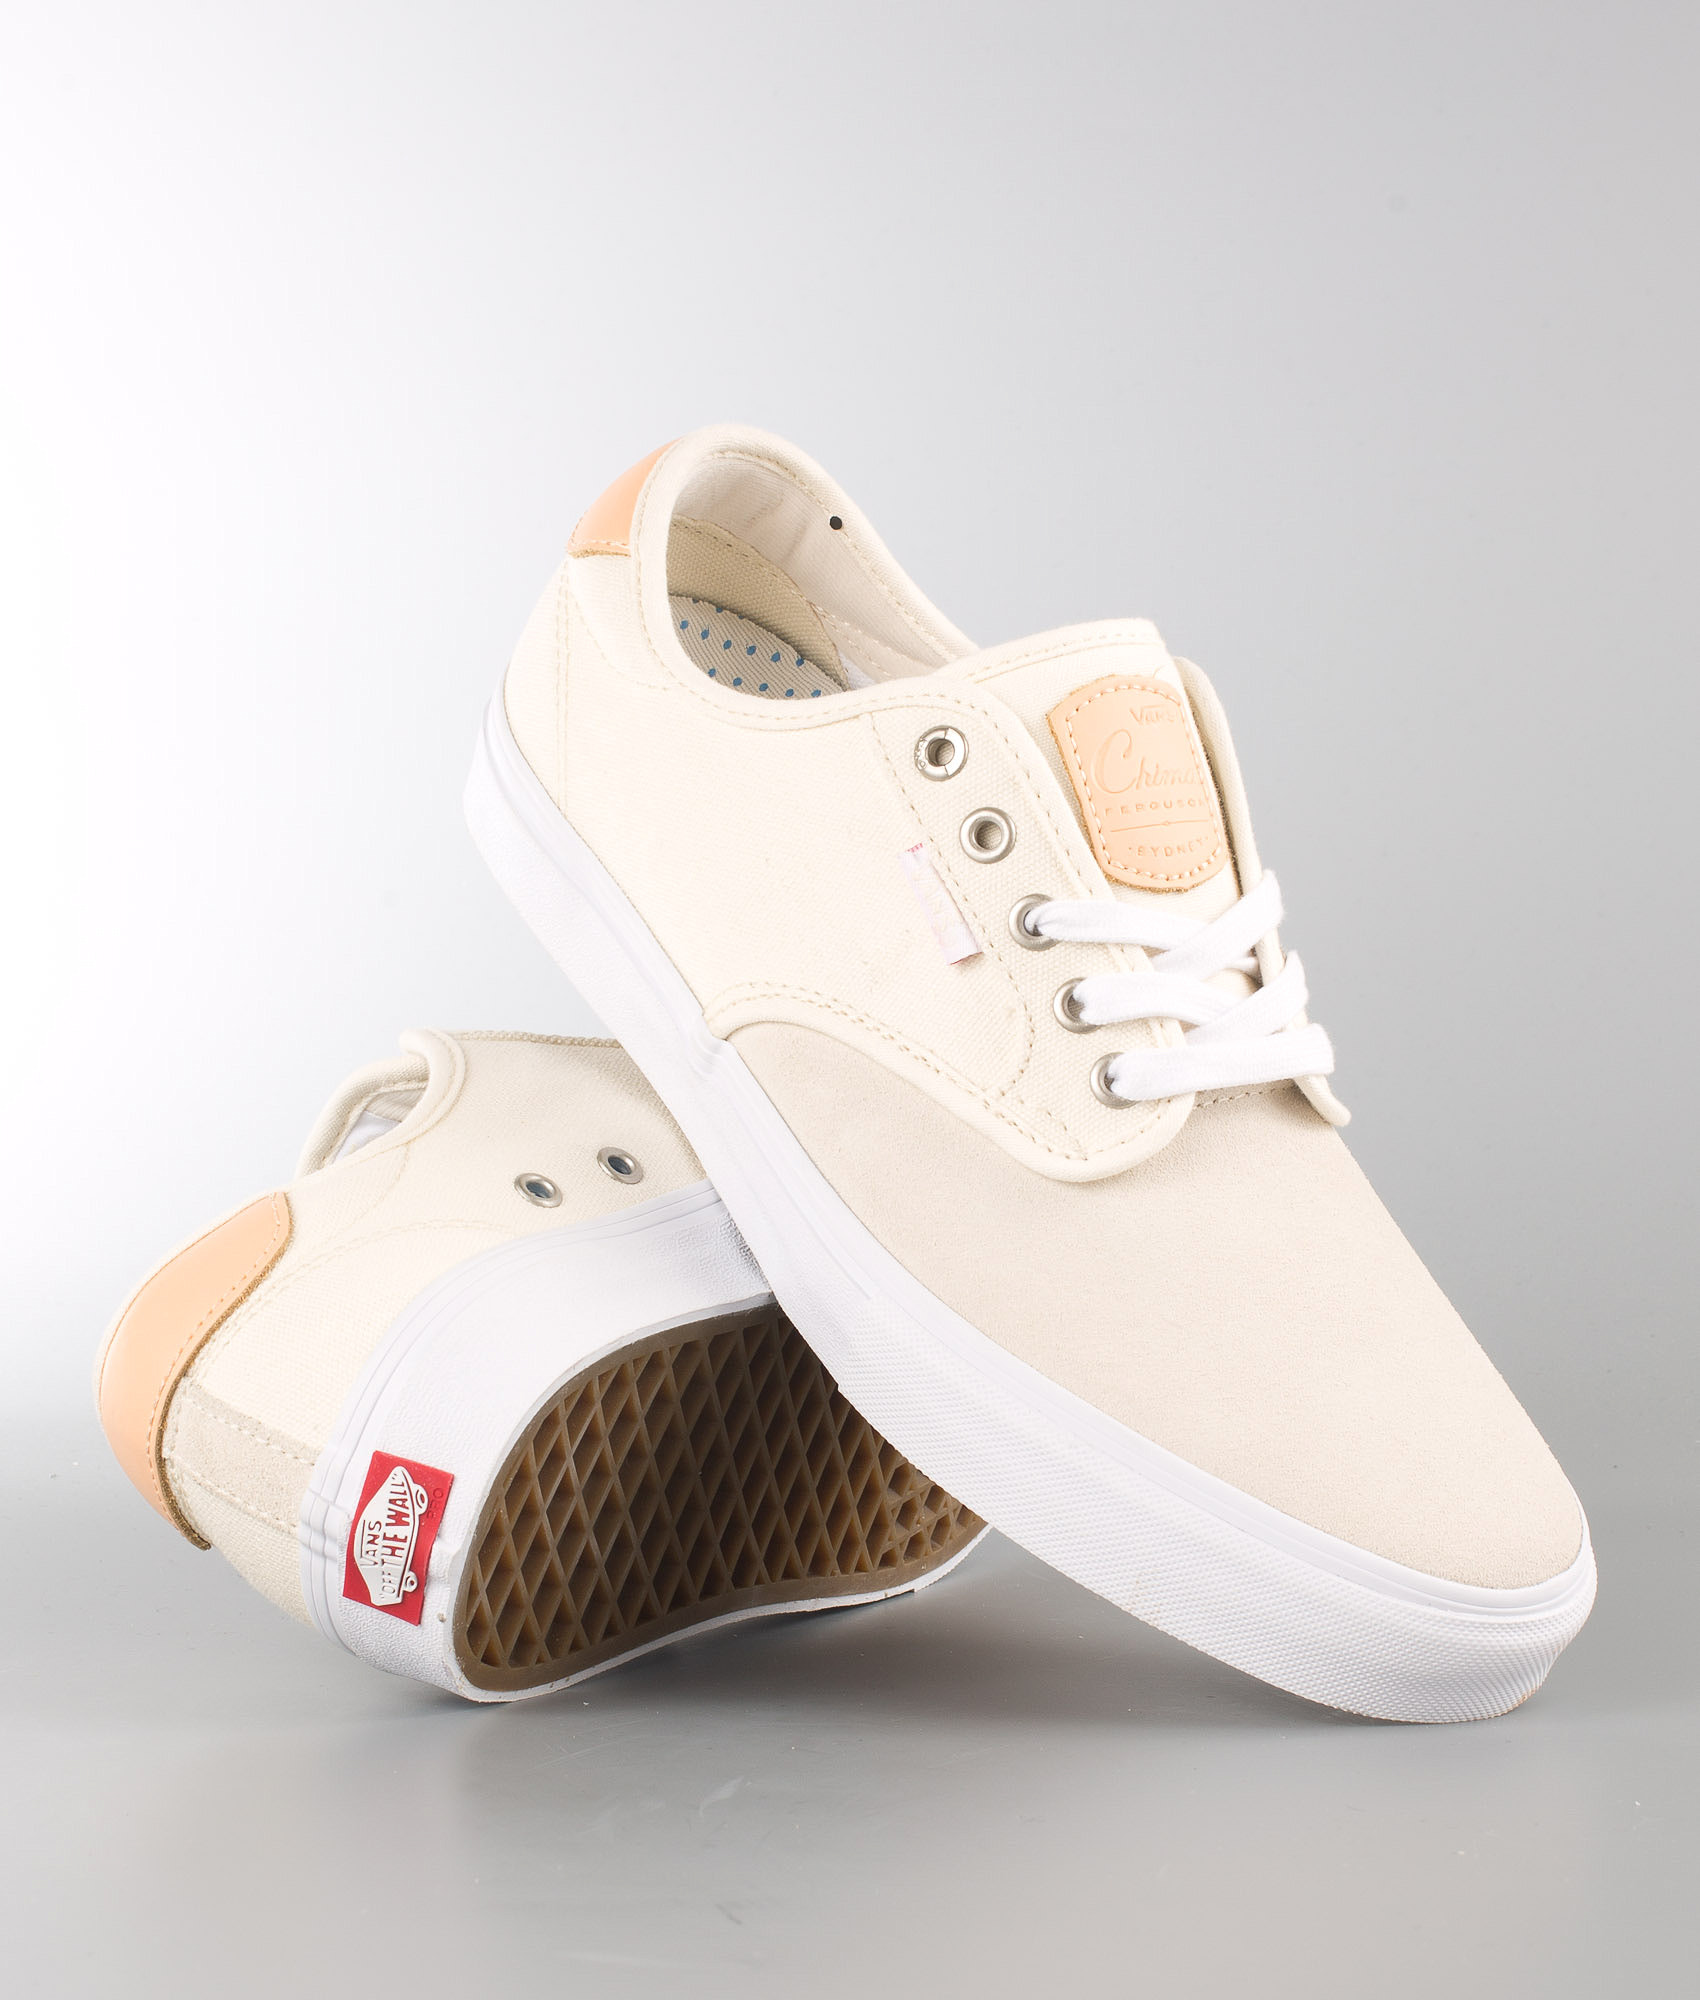 0bc16904d635d1 Vans Chima Ferguson Pro Shoes (Two-Tone) Antique White Natural ...